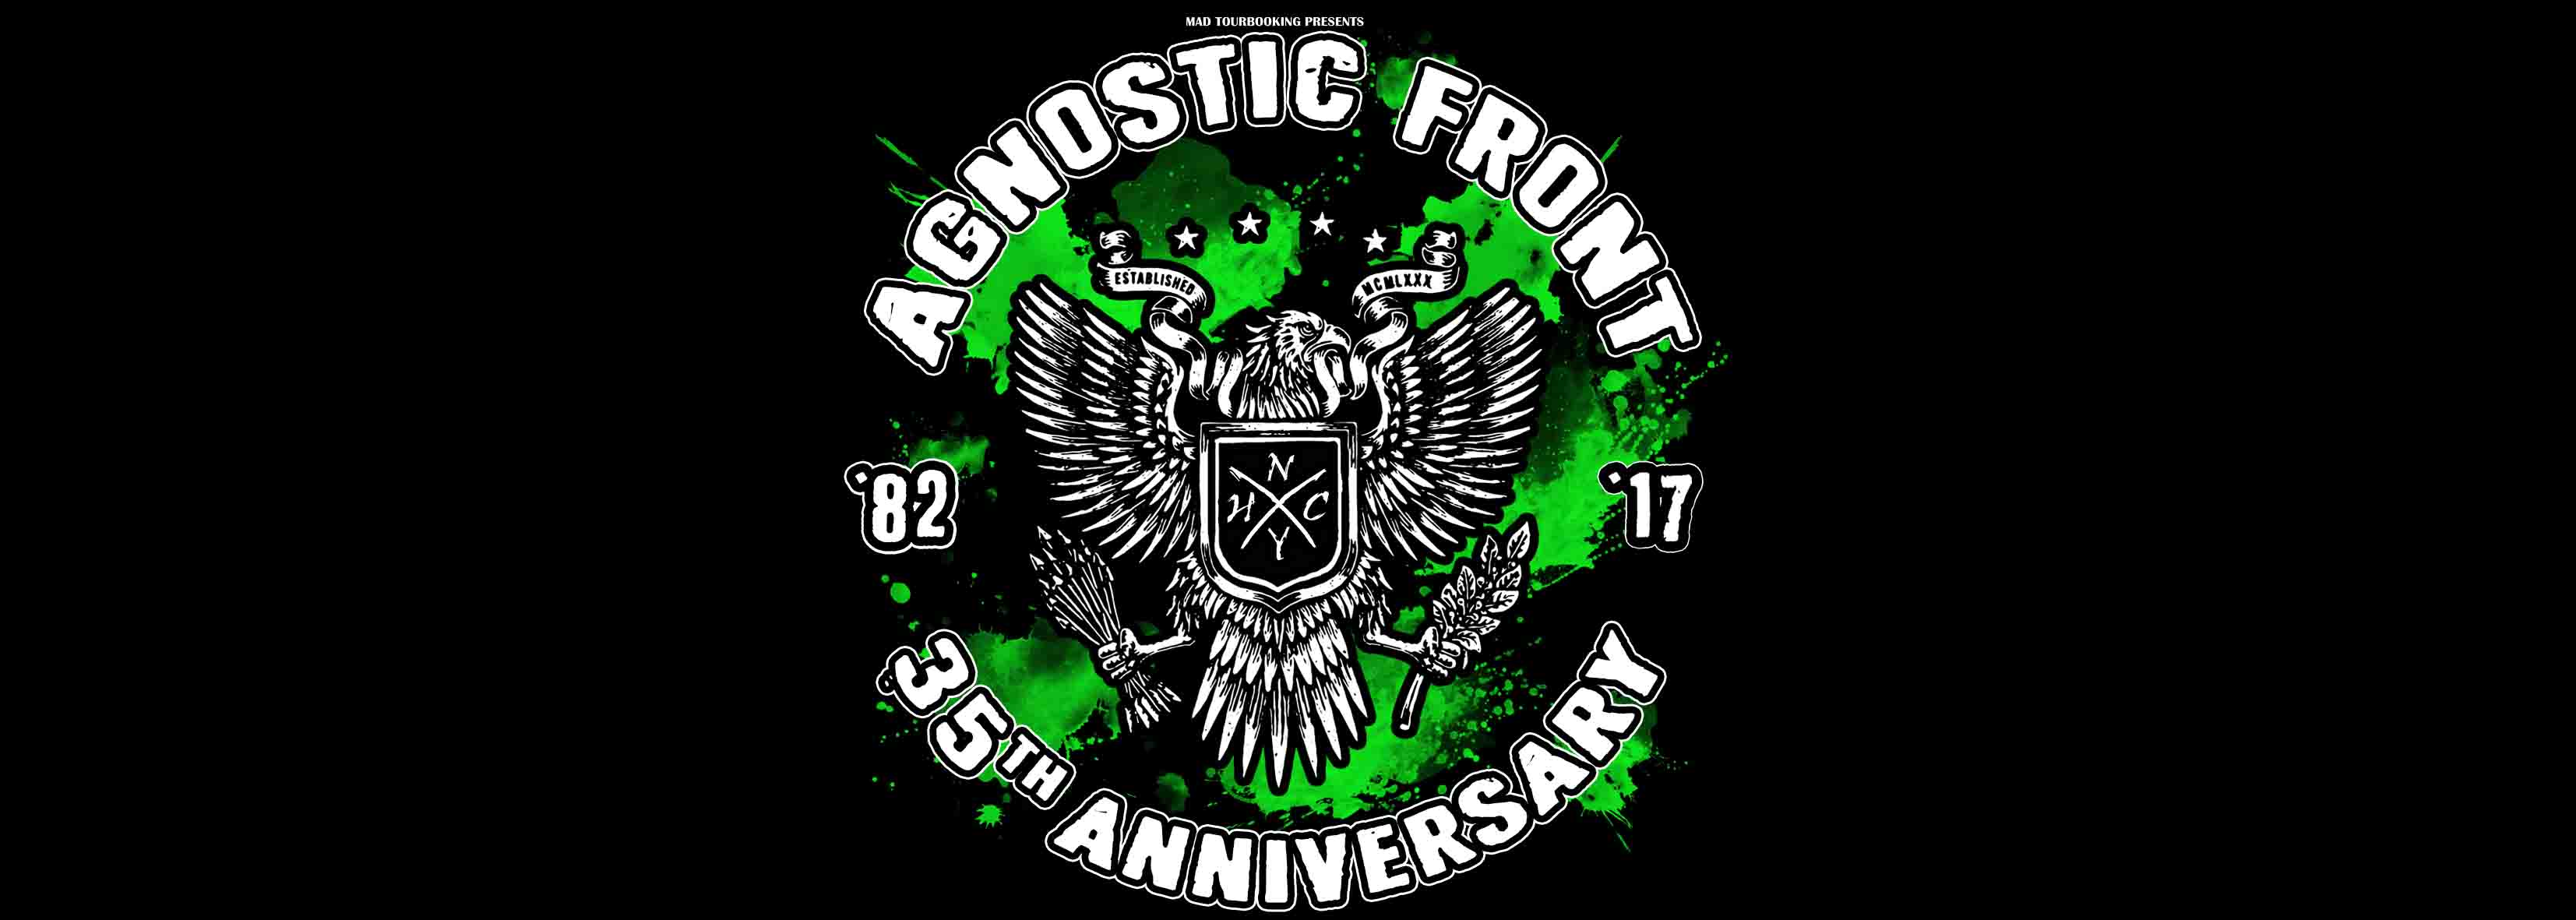 AGNOSTIC FRONT  - 35TH ANNIVERSARY TOUR PART II